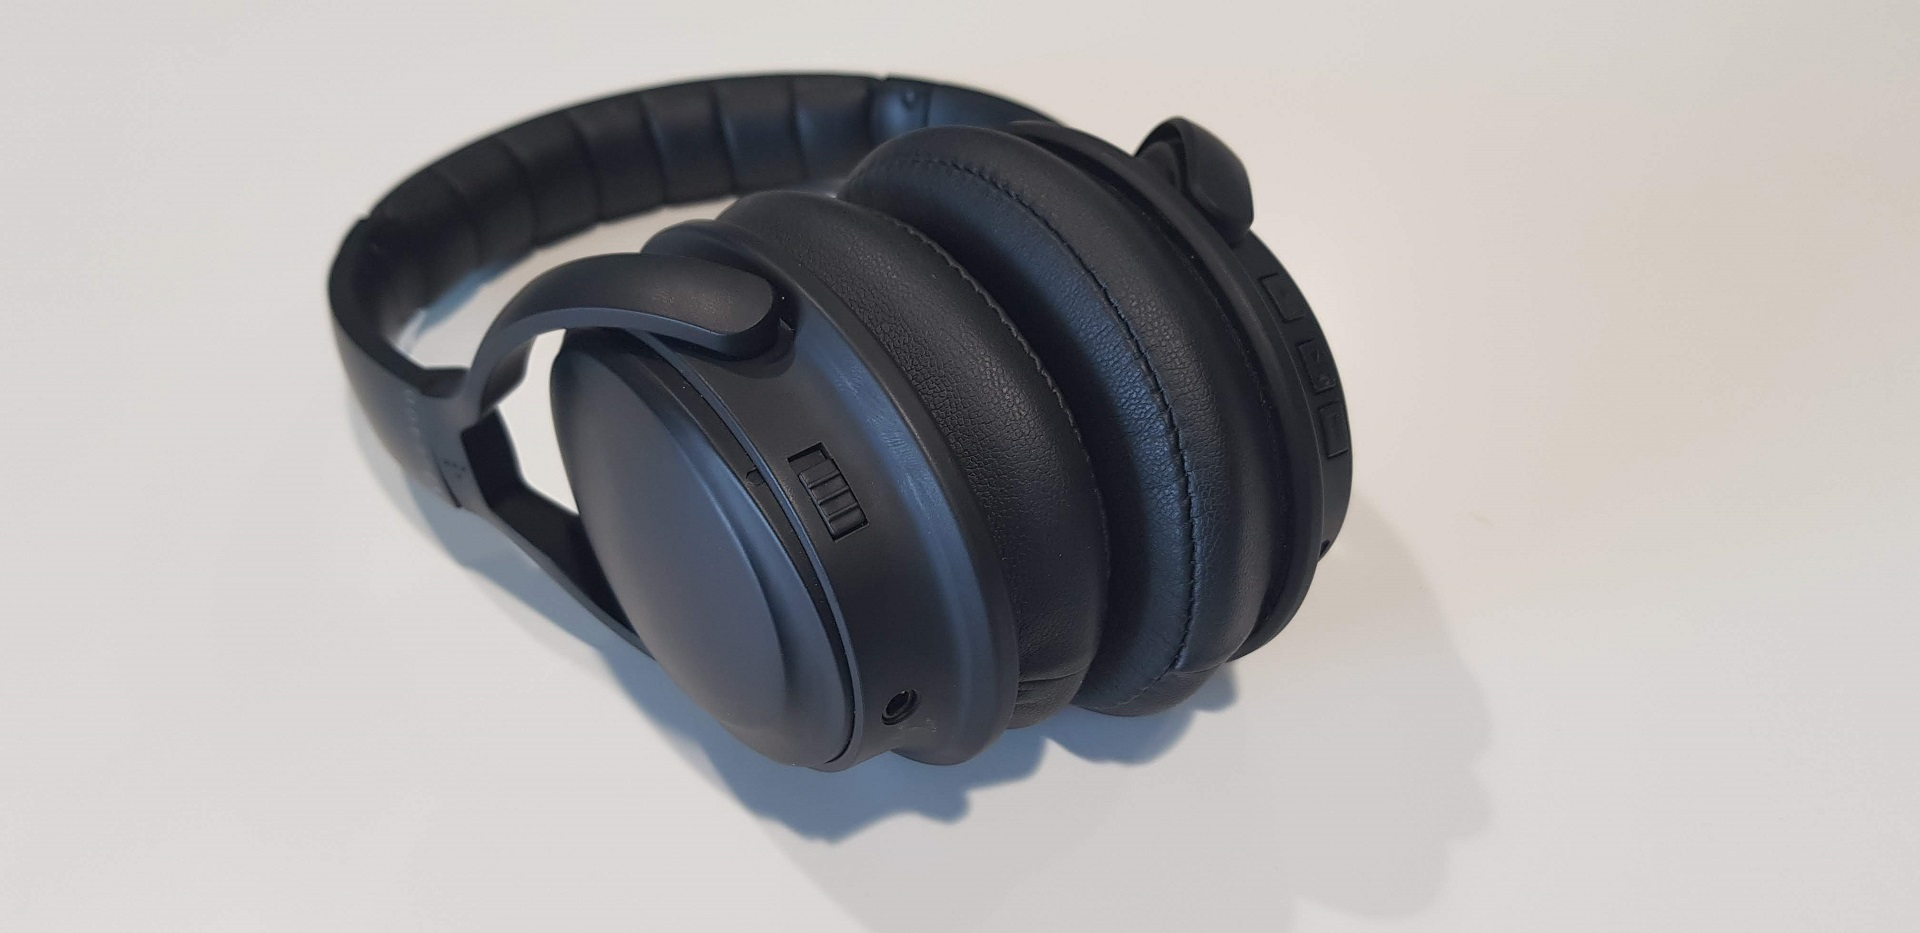 a0f9c6138d0 XQISIT oE400 Wireless Active Noise-Cancelling Headphones Review ...